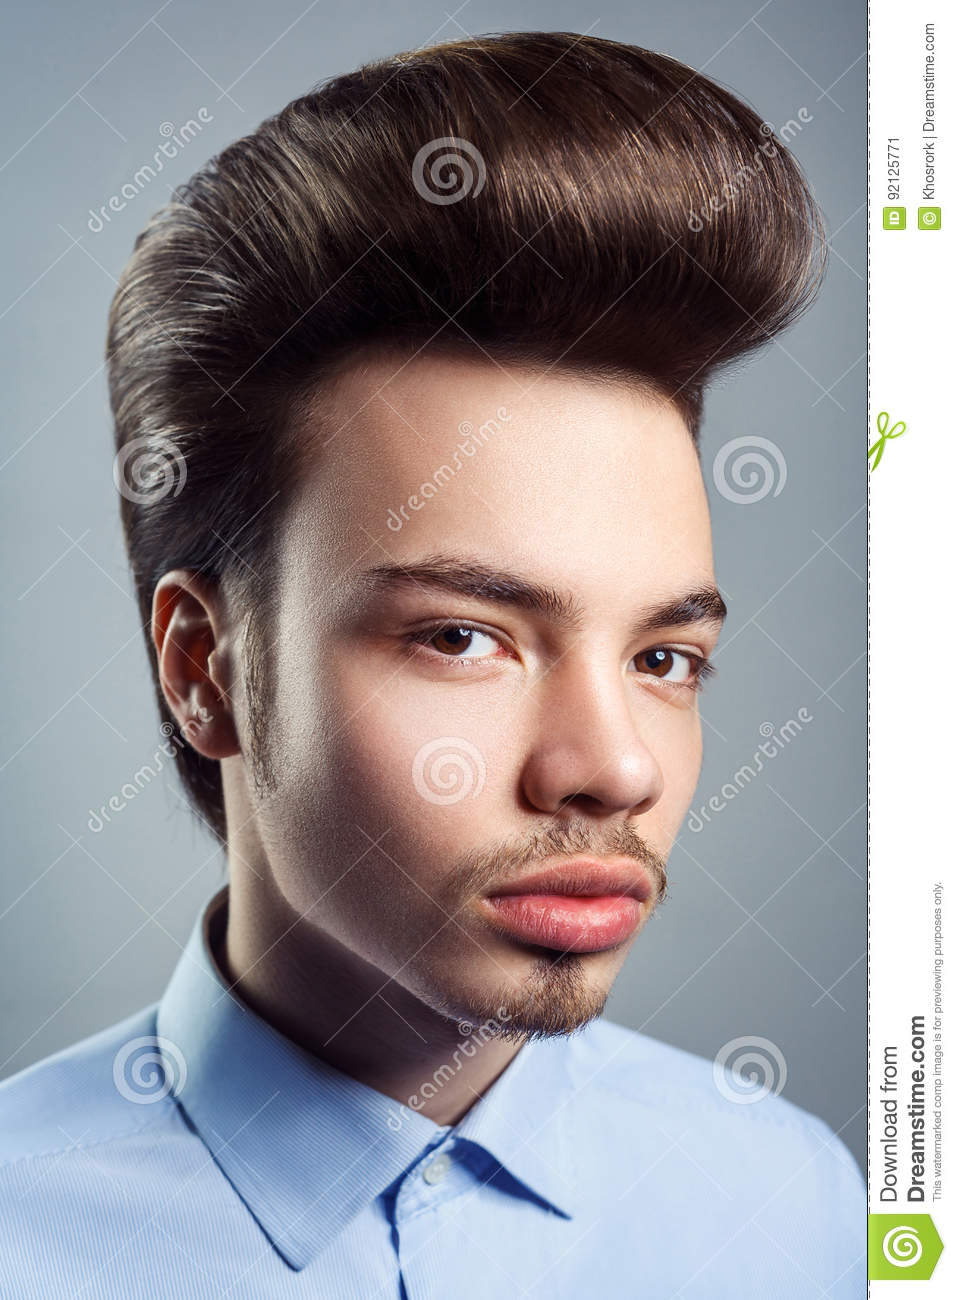 Portrait Of Young Man With Retro Classic Pompadour Hairstyle Stock